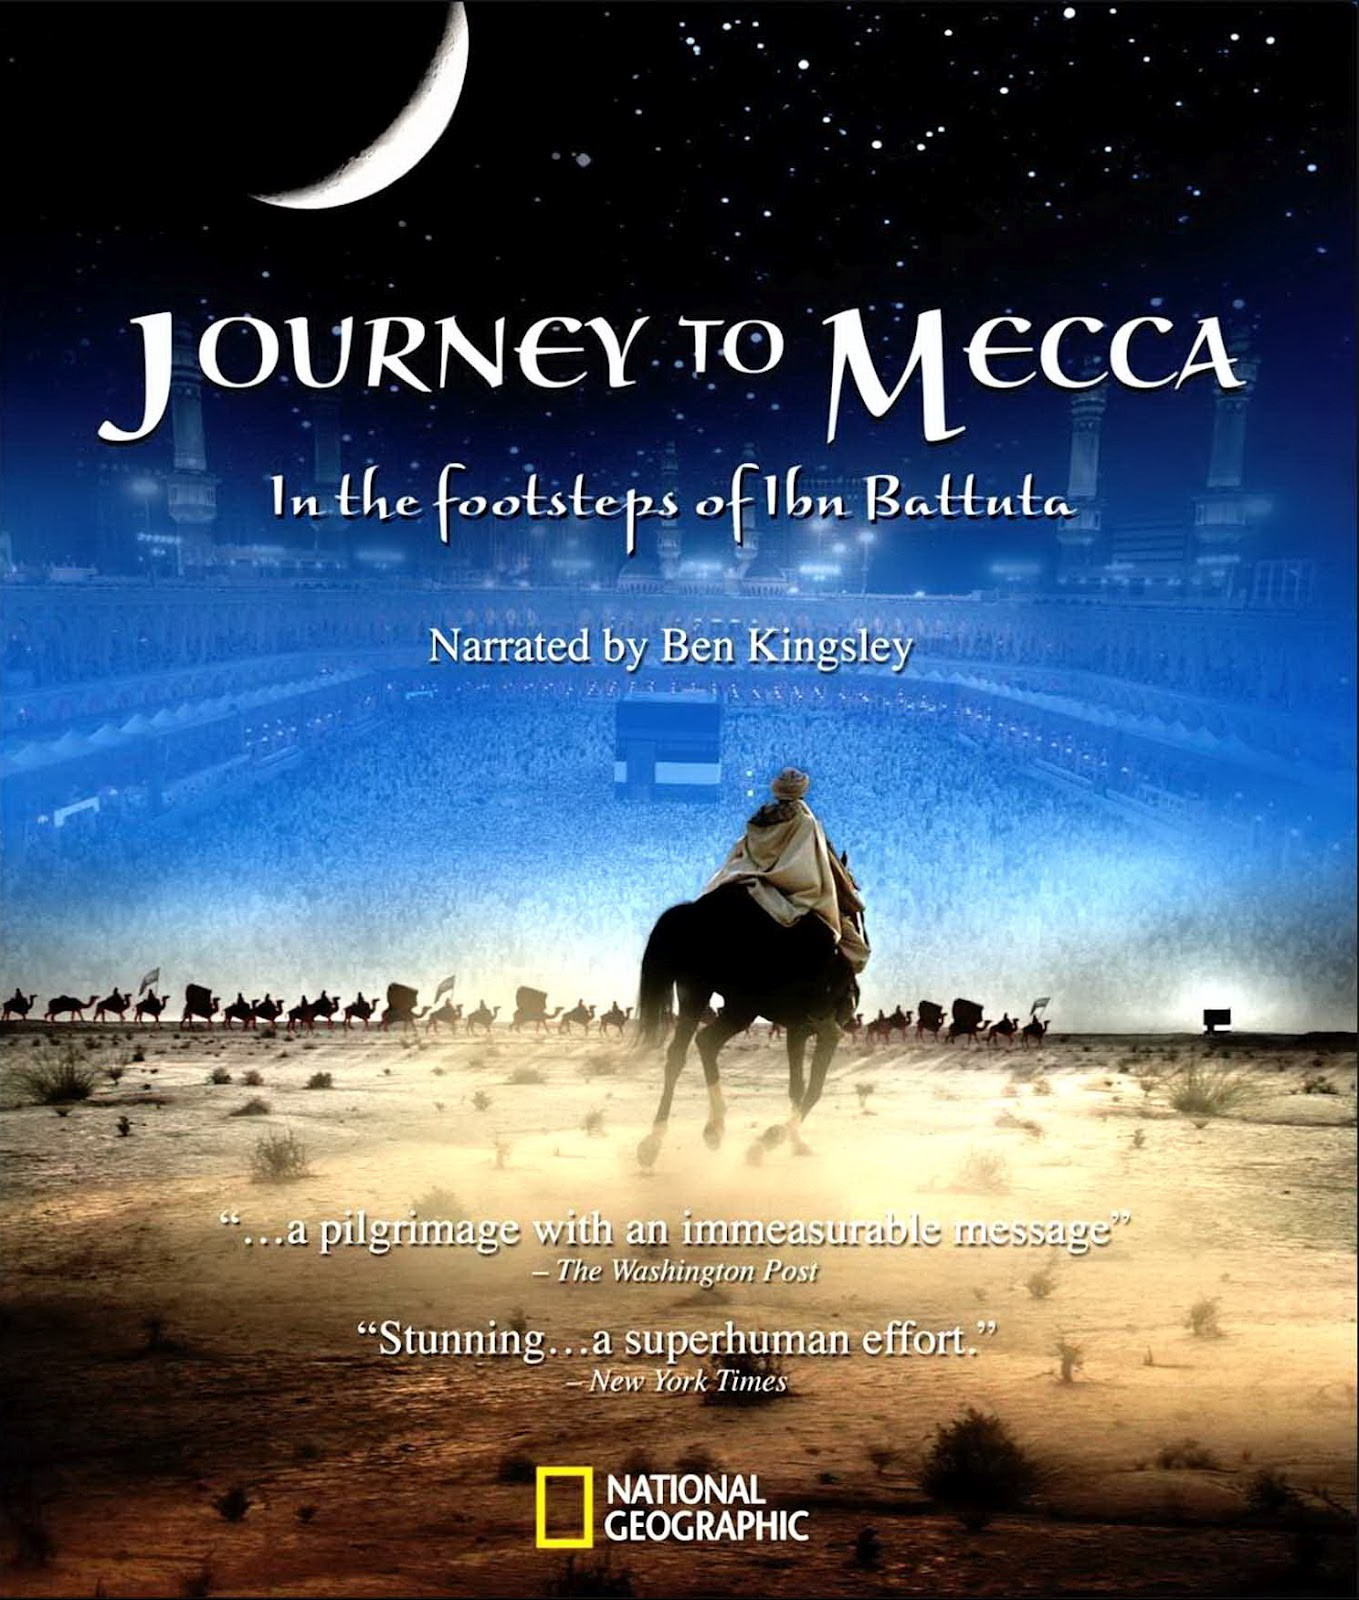 15 Inspirations from Mecca and the Hajj Pilgrimage - Ummah Wide